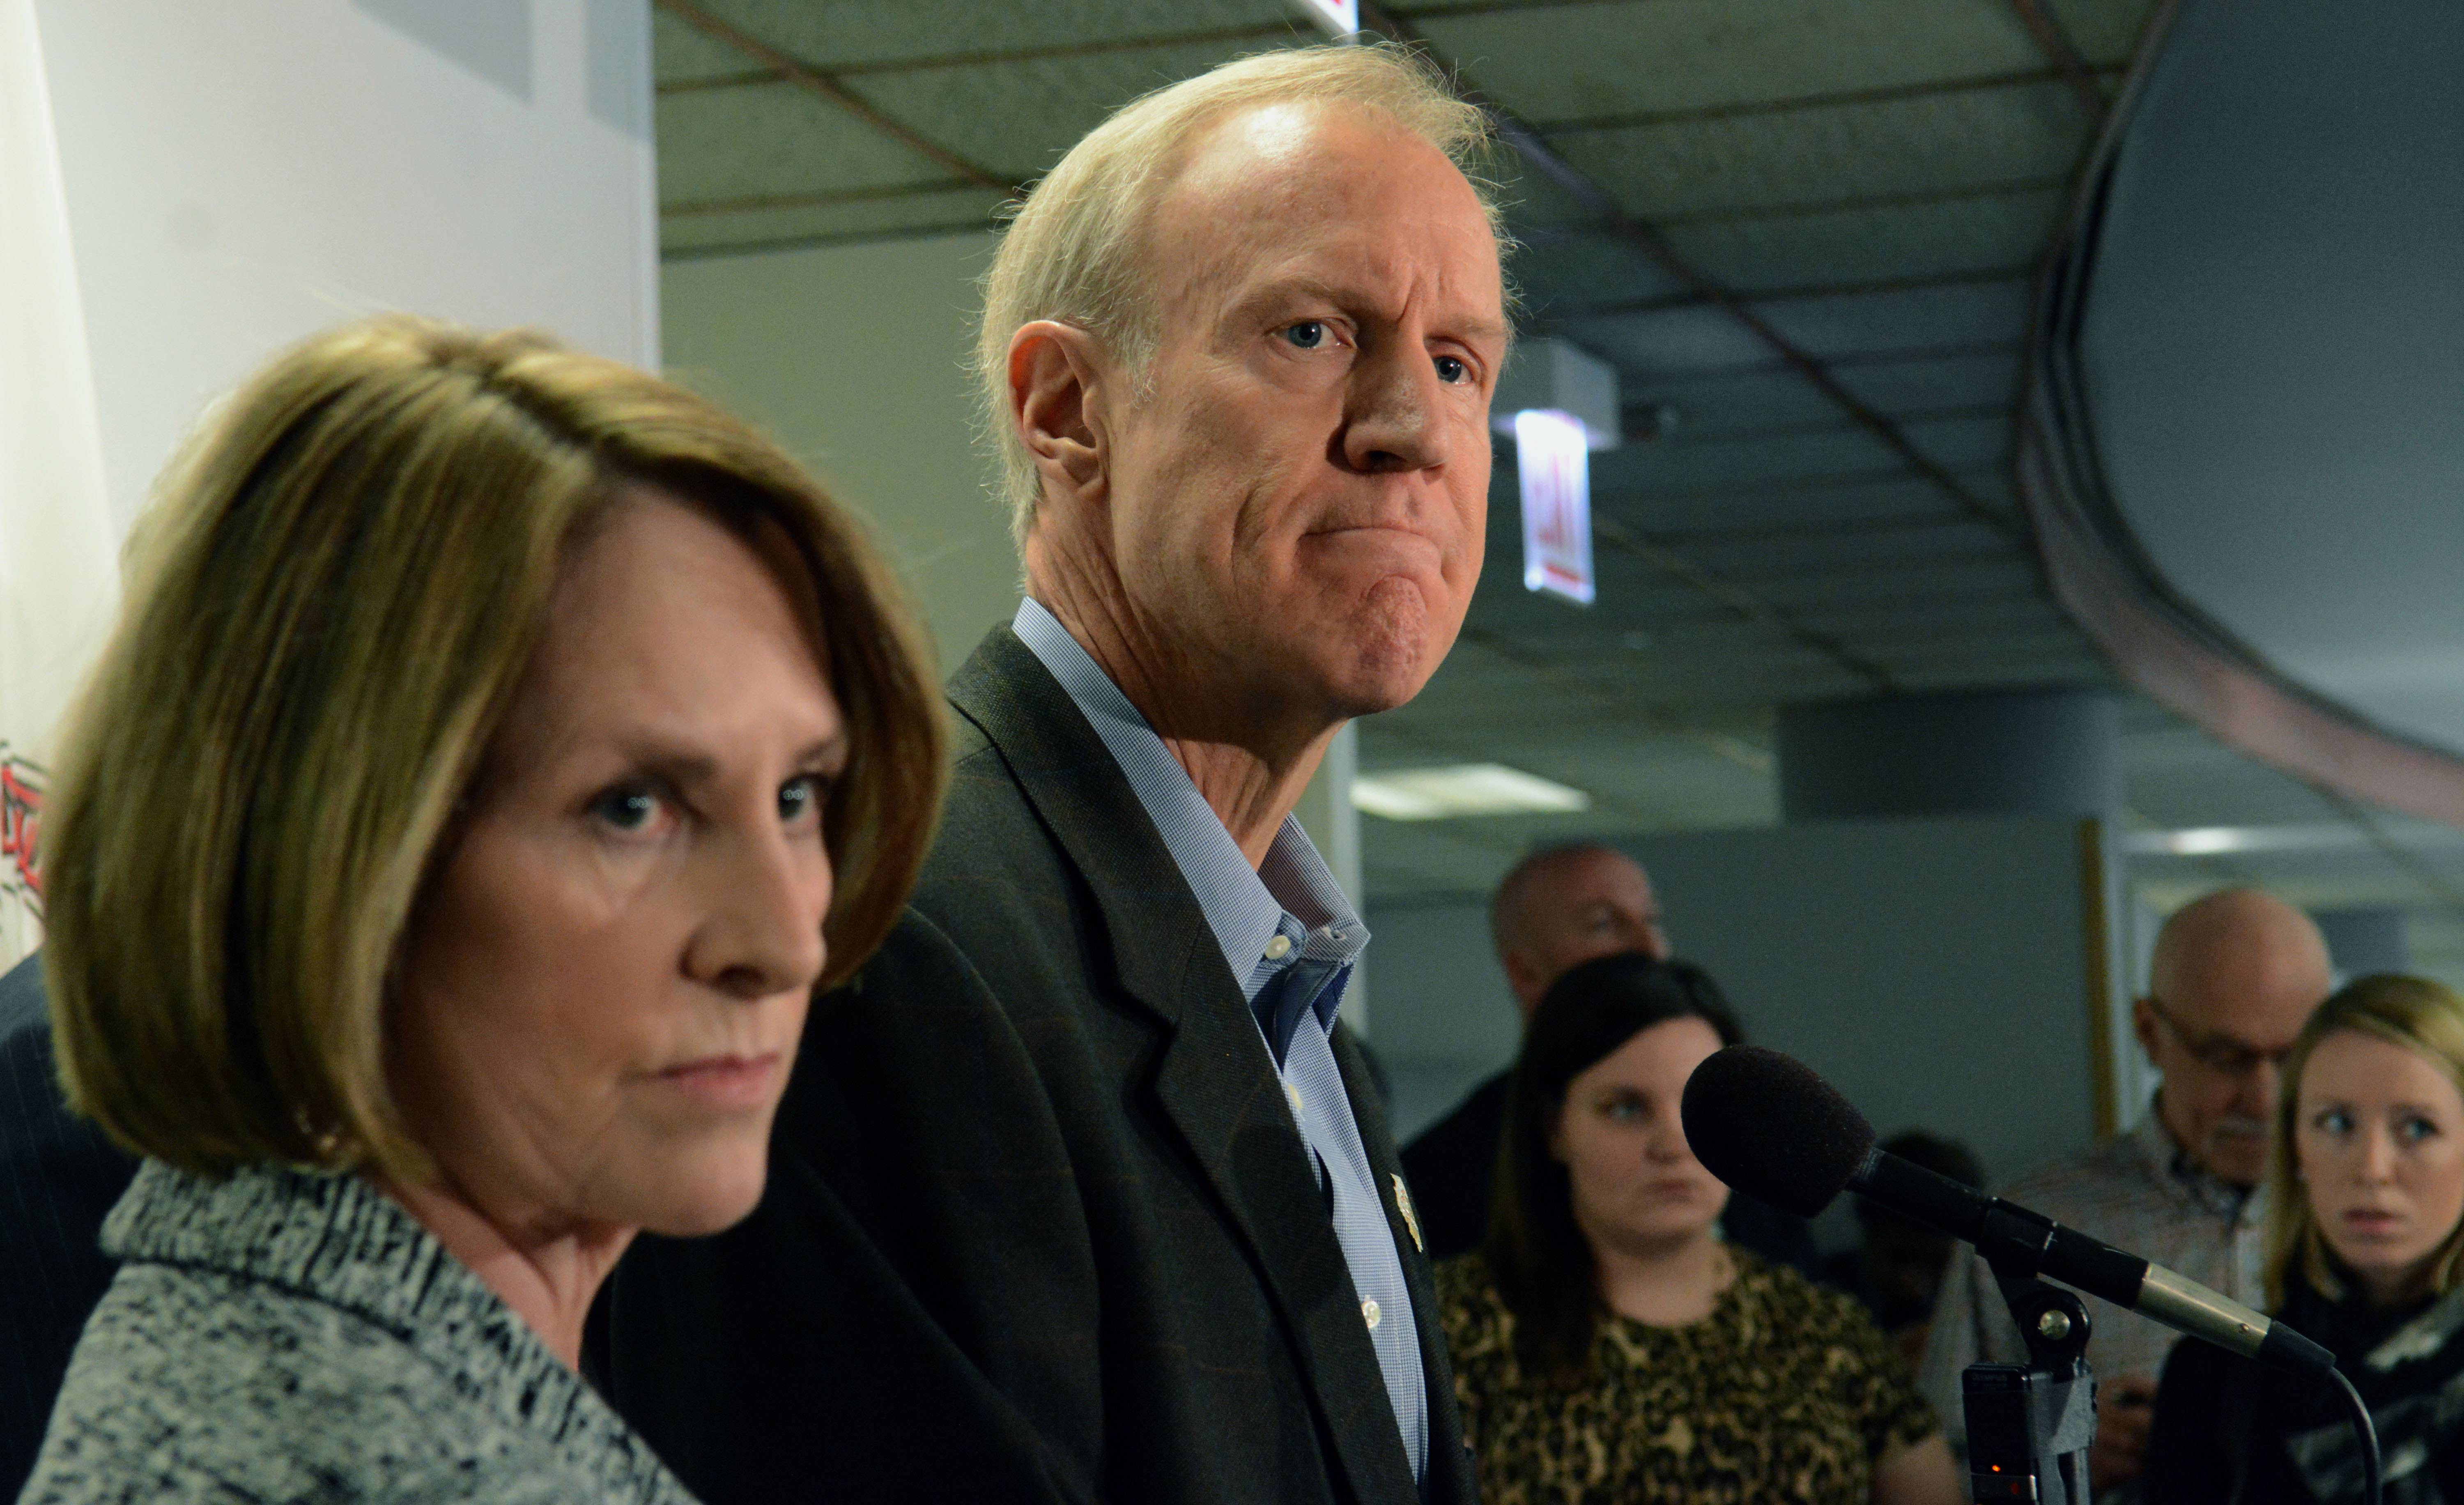 Gov. Bruce Rauner, with Sen. Christine Radogno, expresses support Thursday for a pension proposal giving public workers a choice of reduced benefits.